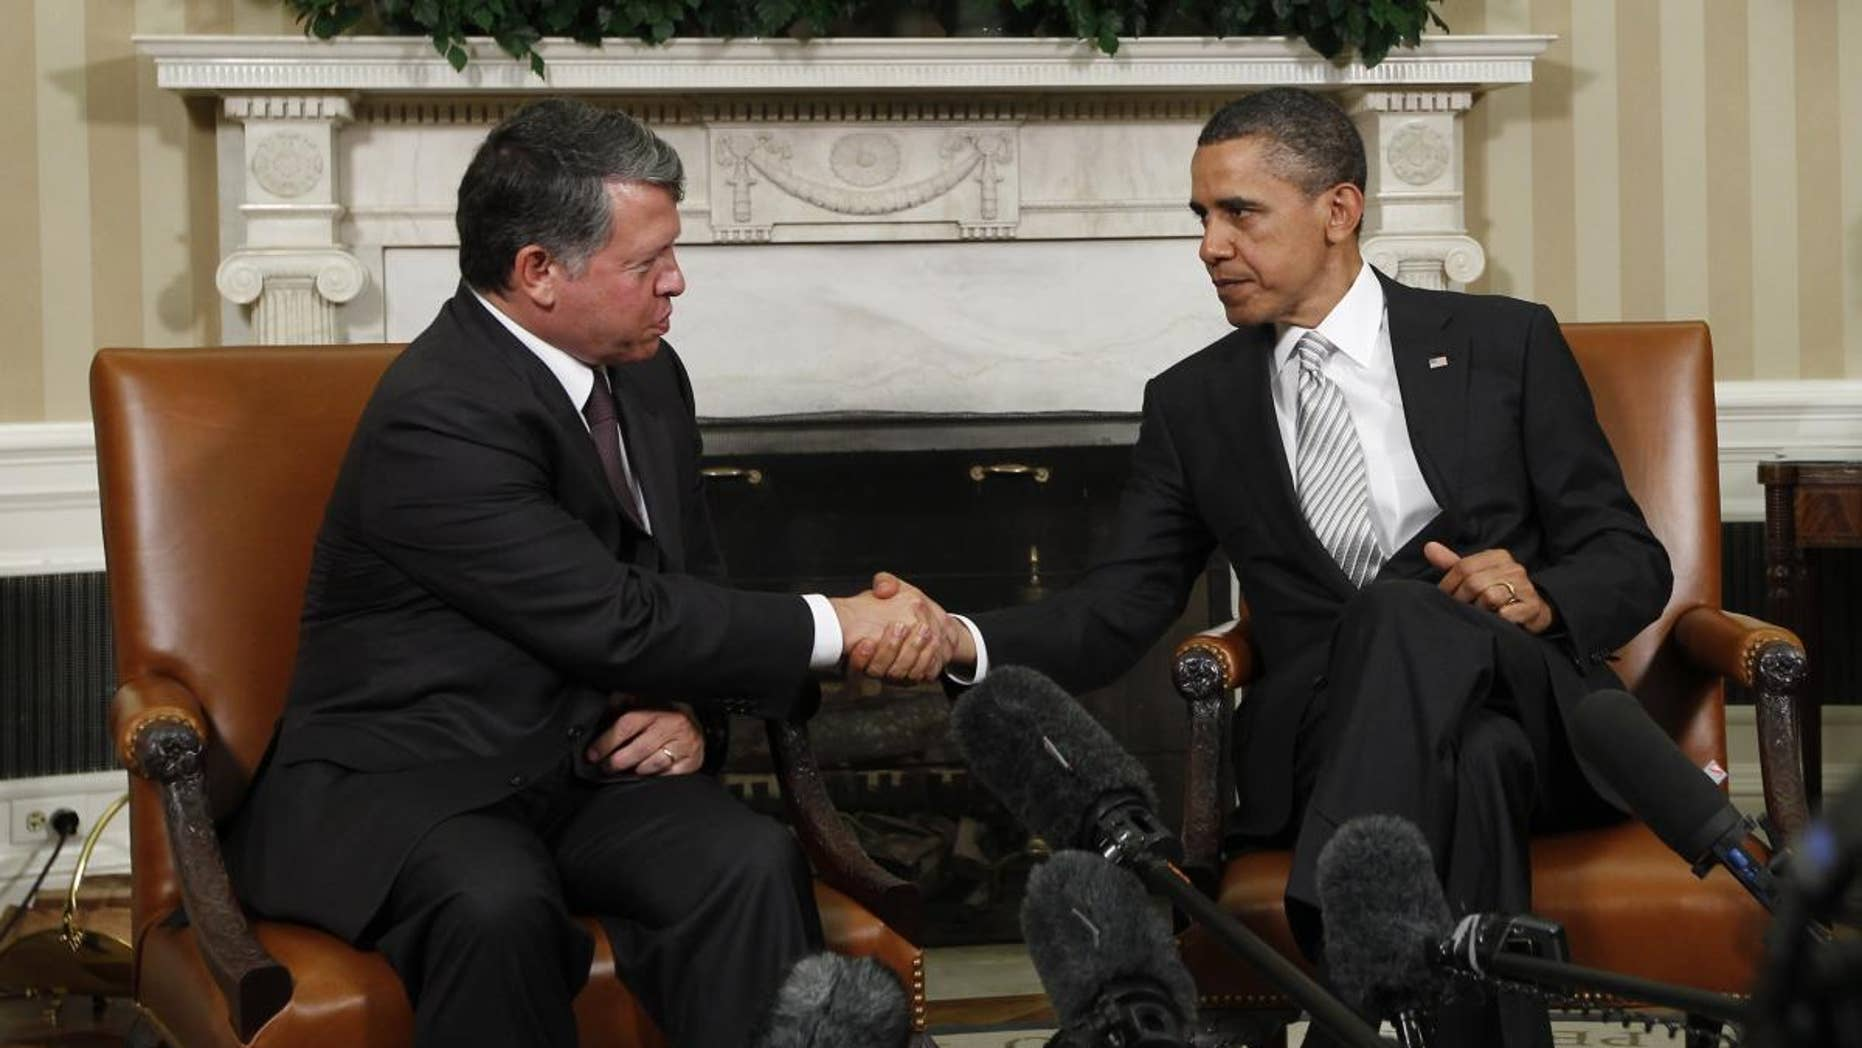 AP image of President Obama and King Abdullah making remarks to the press in the Oval Office.